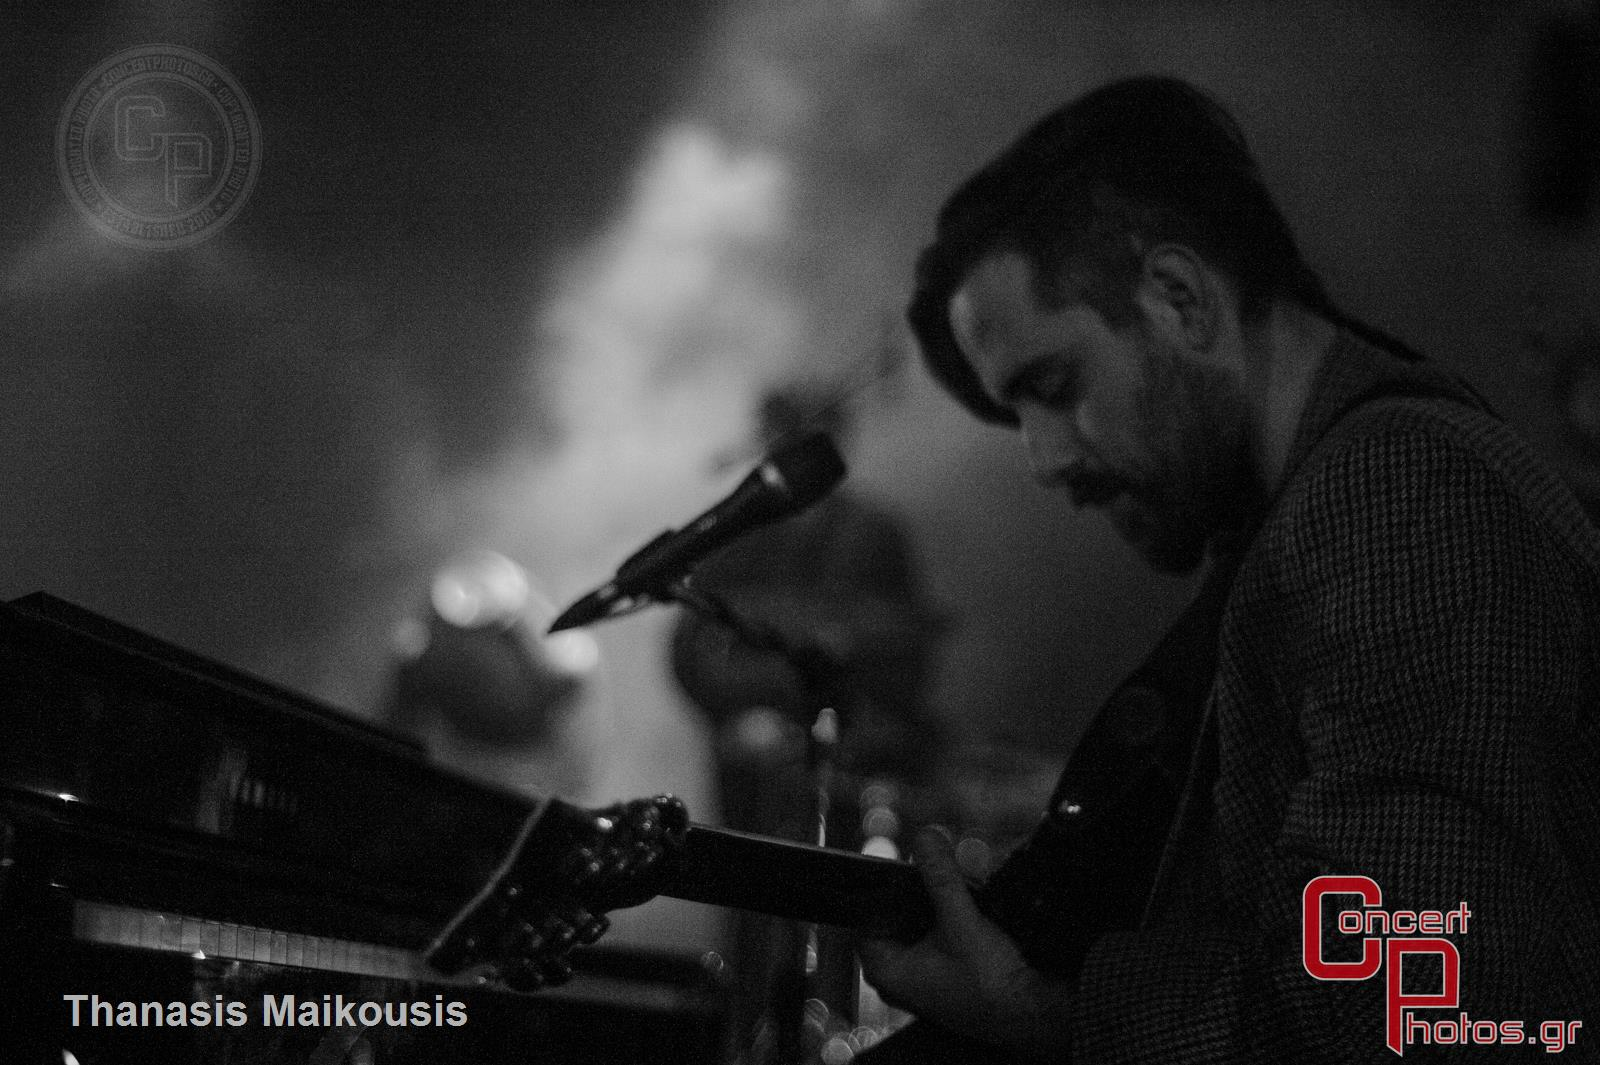 Electric Litany -  GravitySays-Electric Litany GravitySays photographer: Thanasis Maikousis - concertphotos_20150418_22_45_33